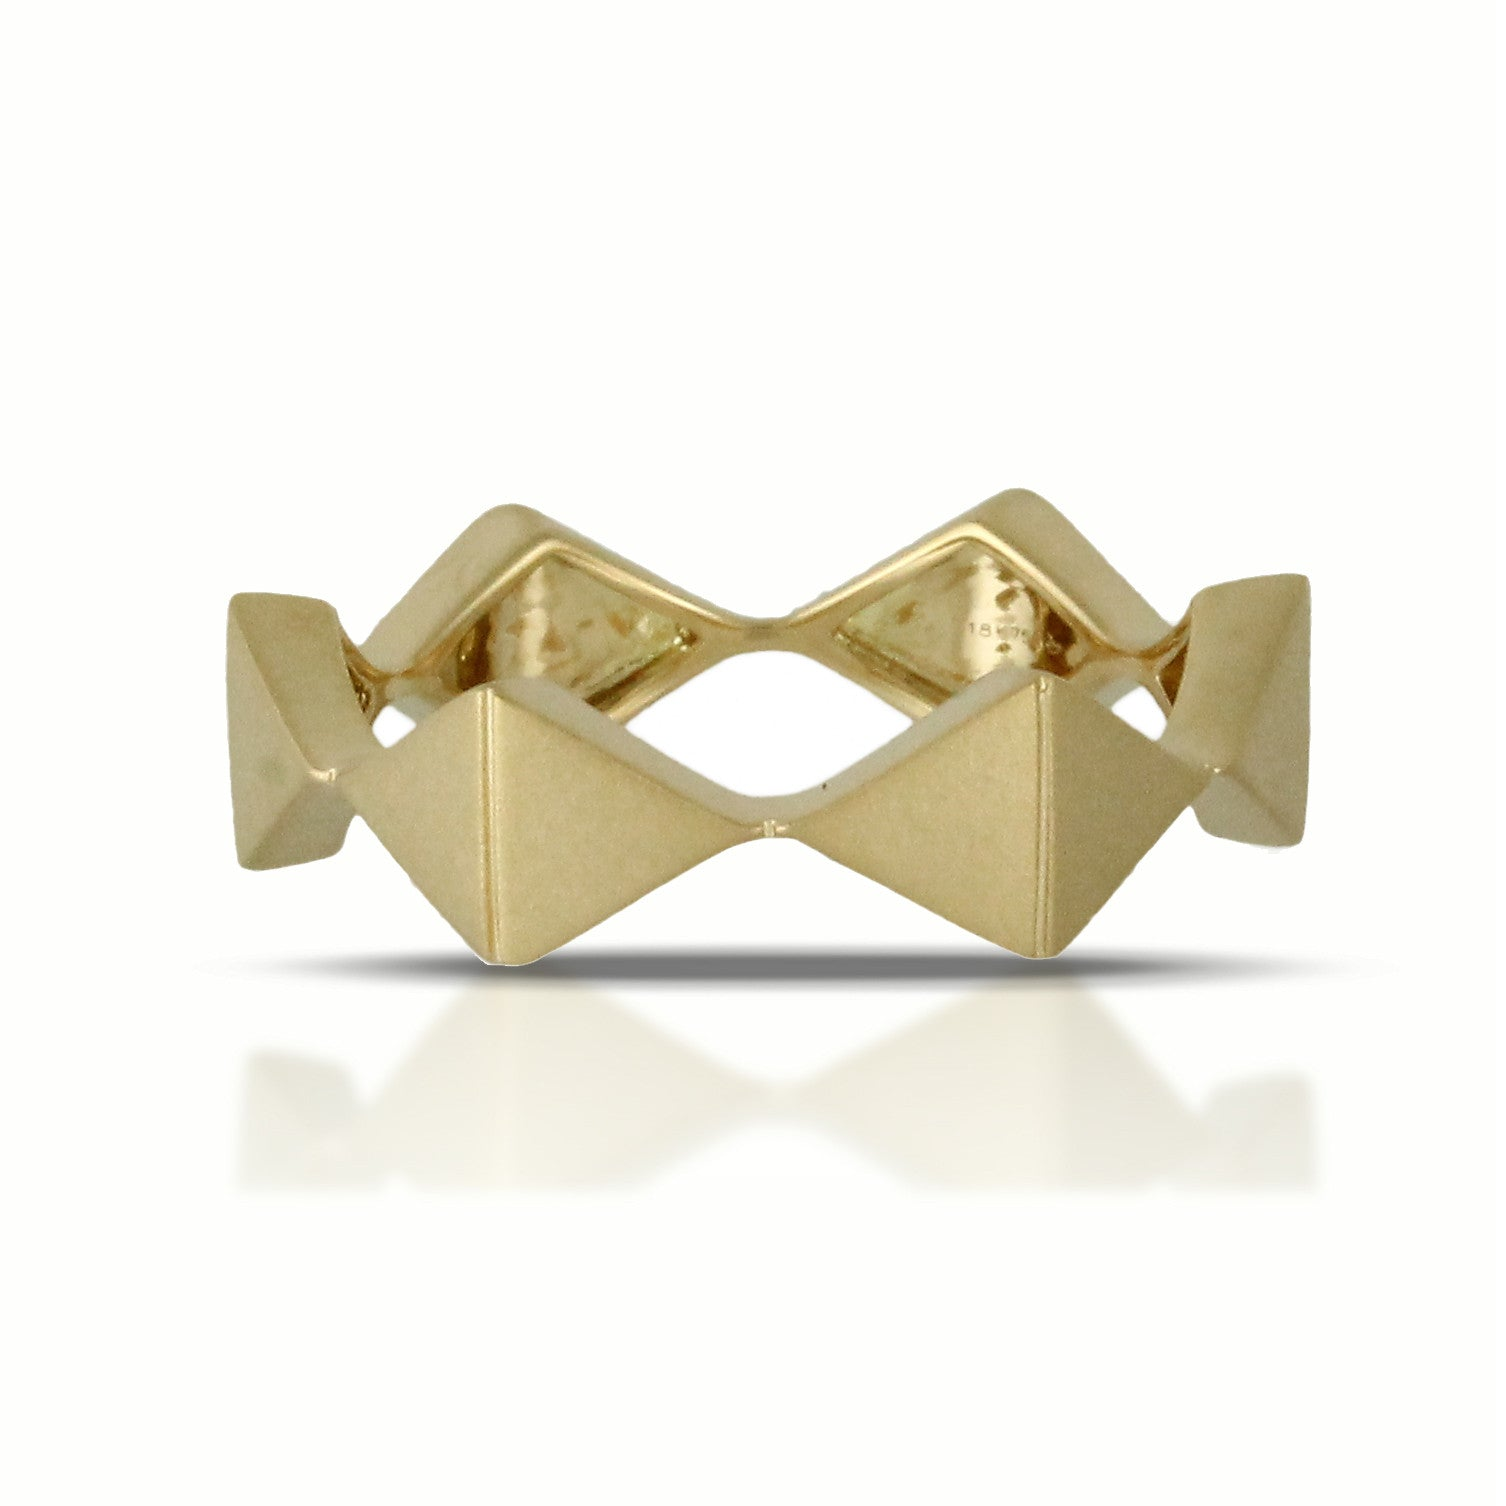 Doves Ladies' 18k Yellow Gold Band by Jewelry Designer Doron Paloma